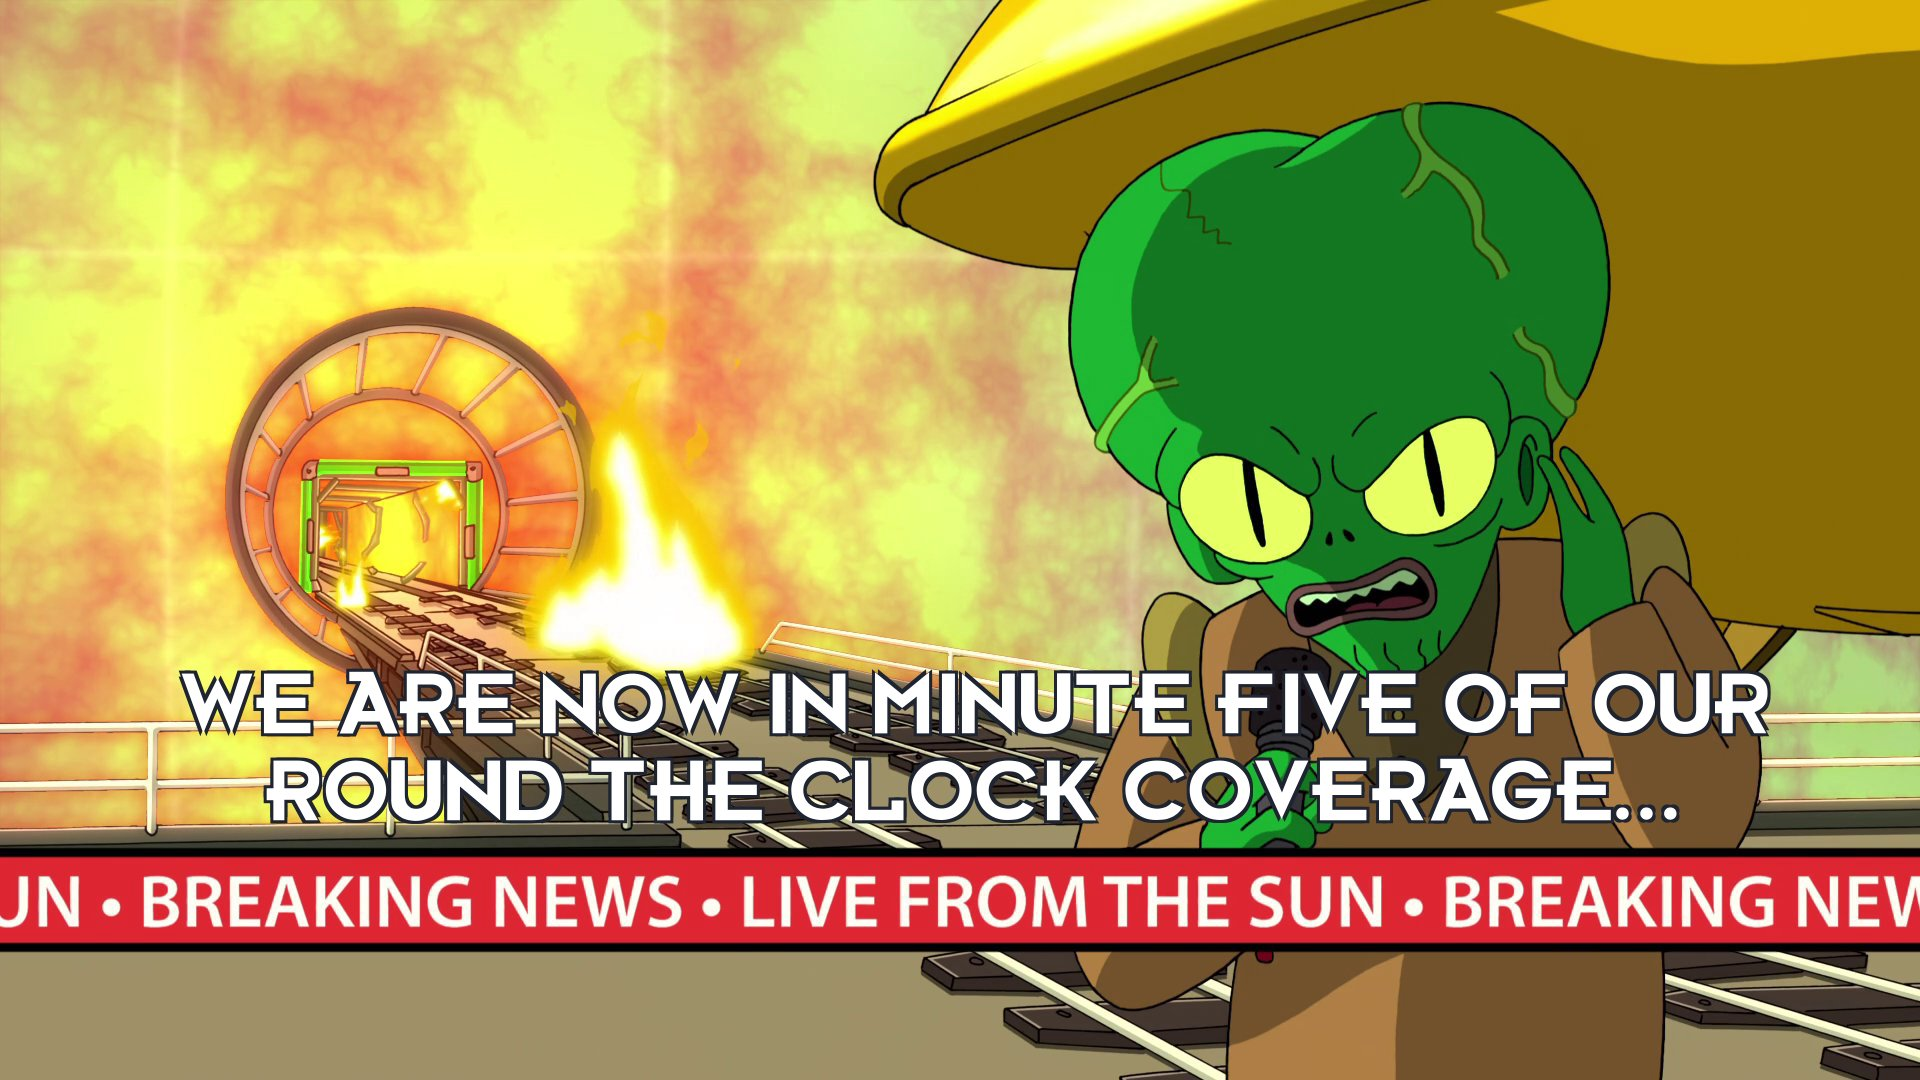 Morbo: We are now in minute five of our round the clock coverage...